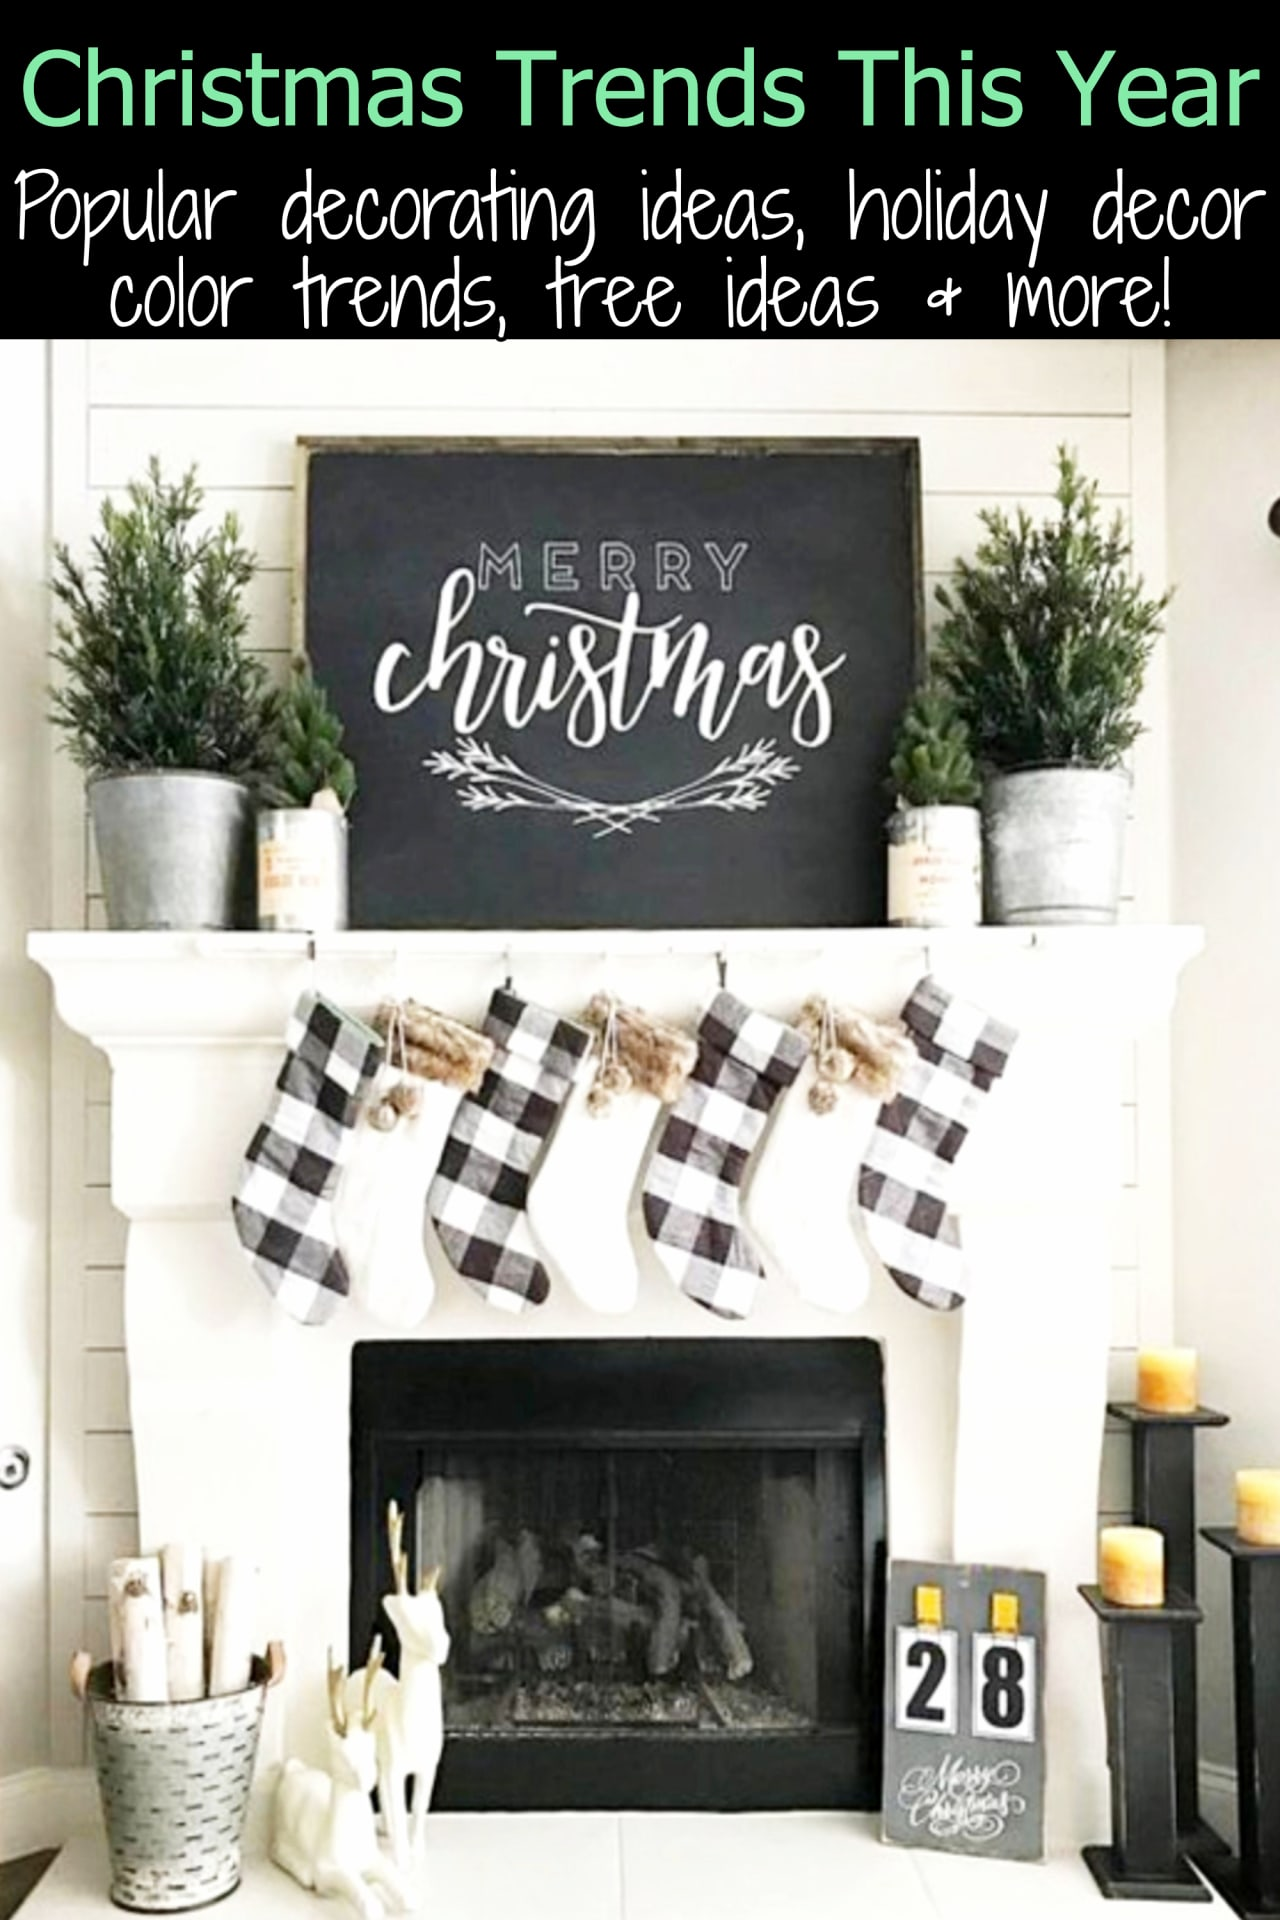 Christmas Trends for 2019 - 2020 Holiday Season - Popular Christmas color schemes, Christmas home decor, decorating ideas inspiration and more Christmas trends for this year